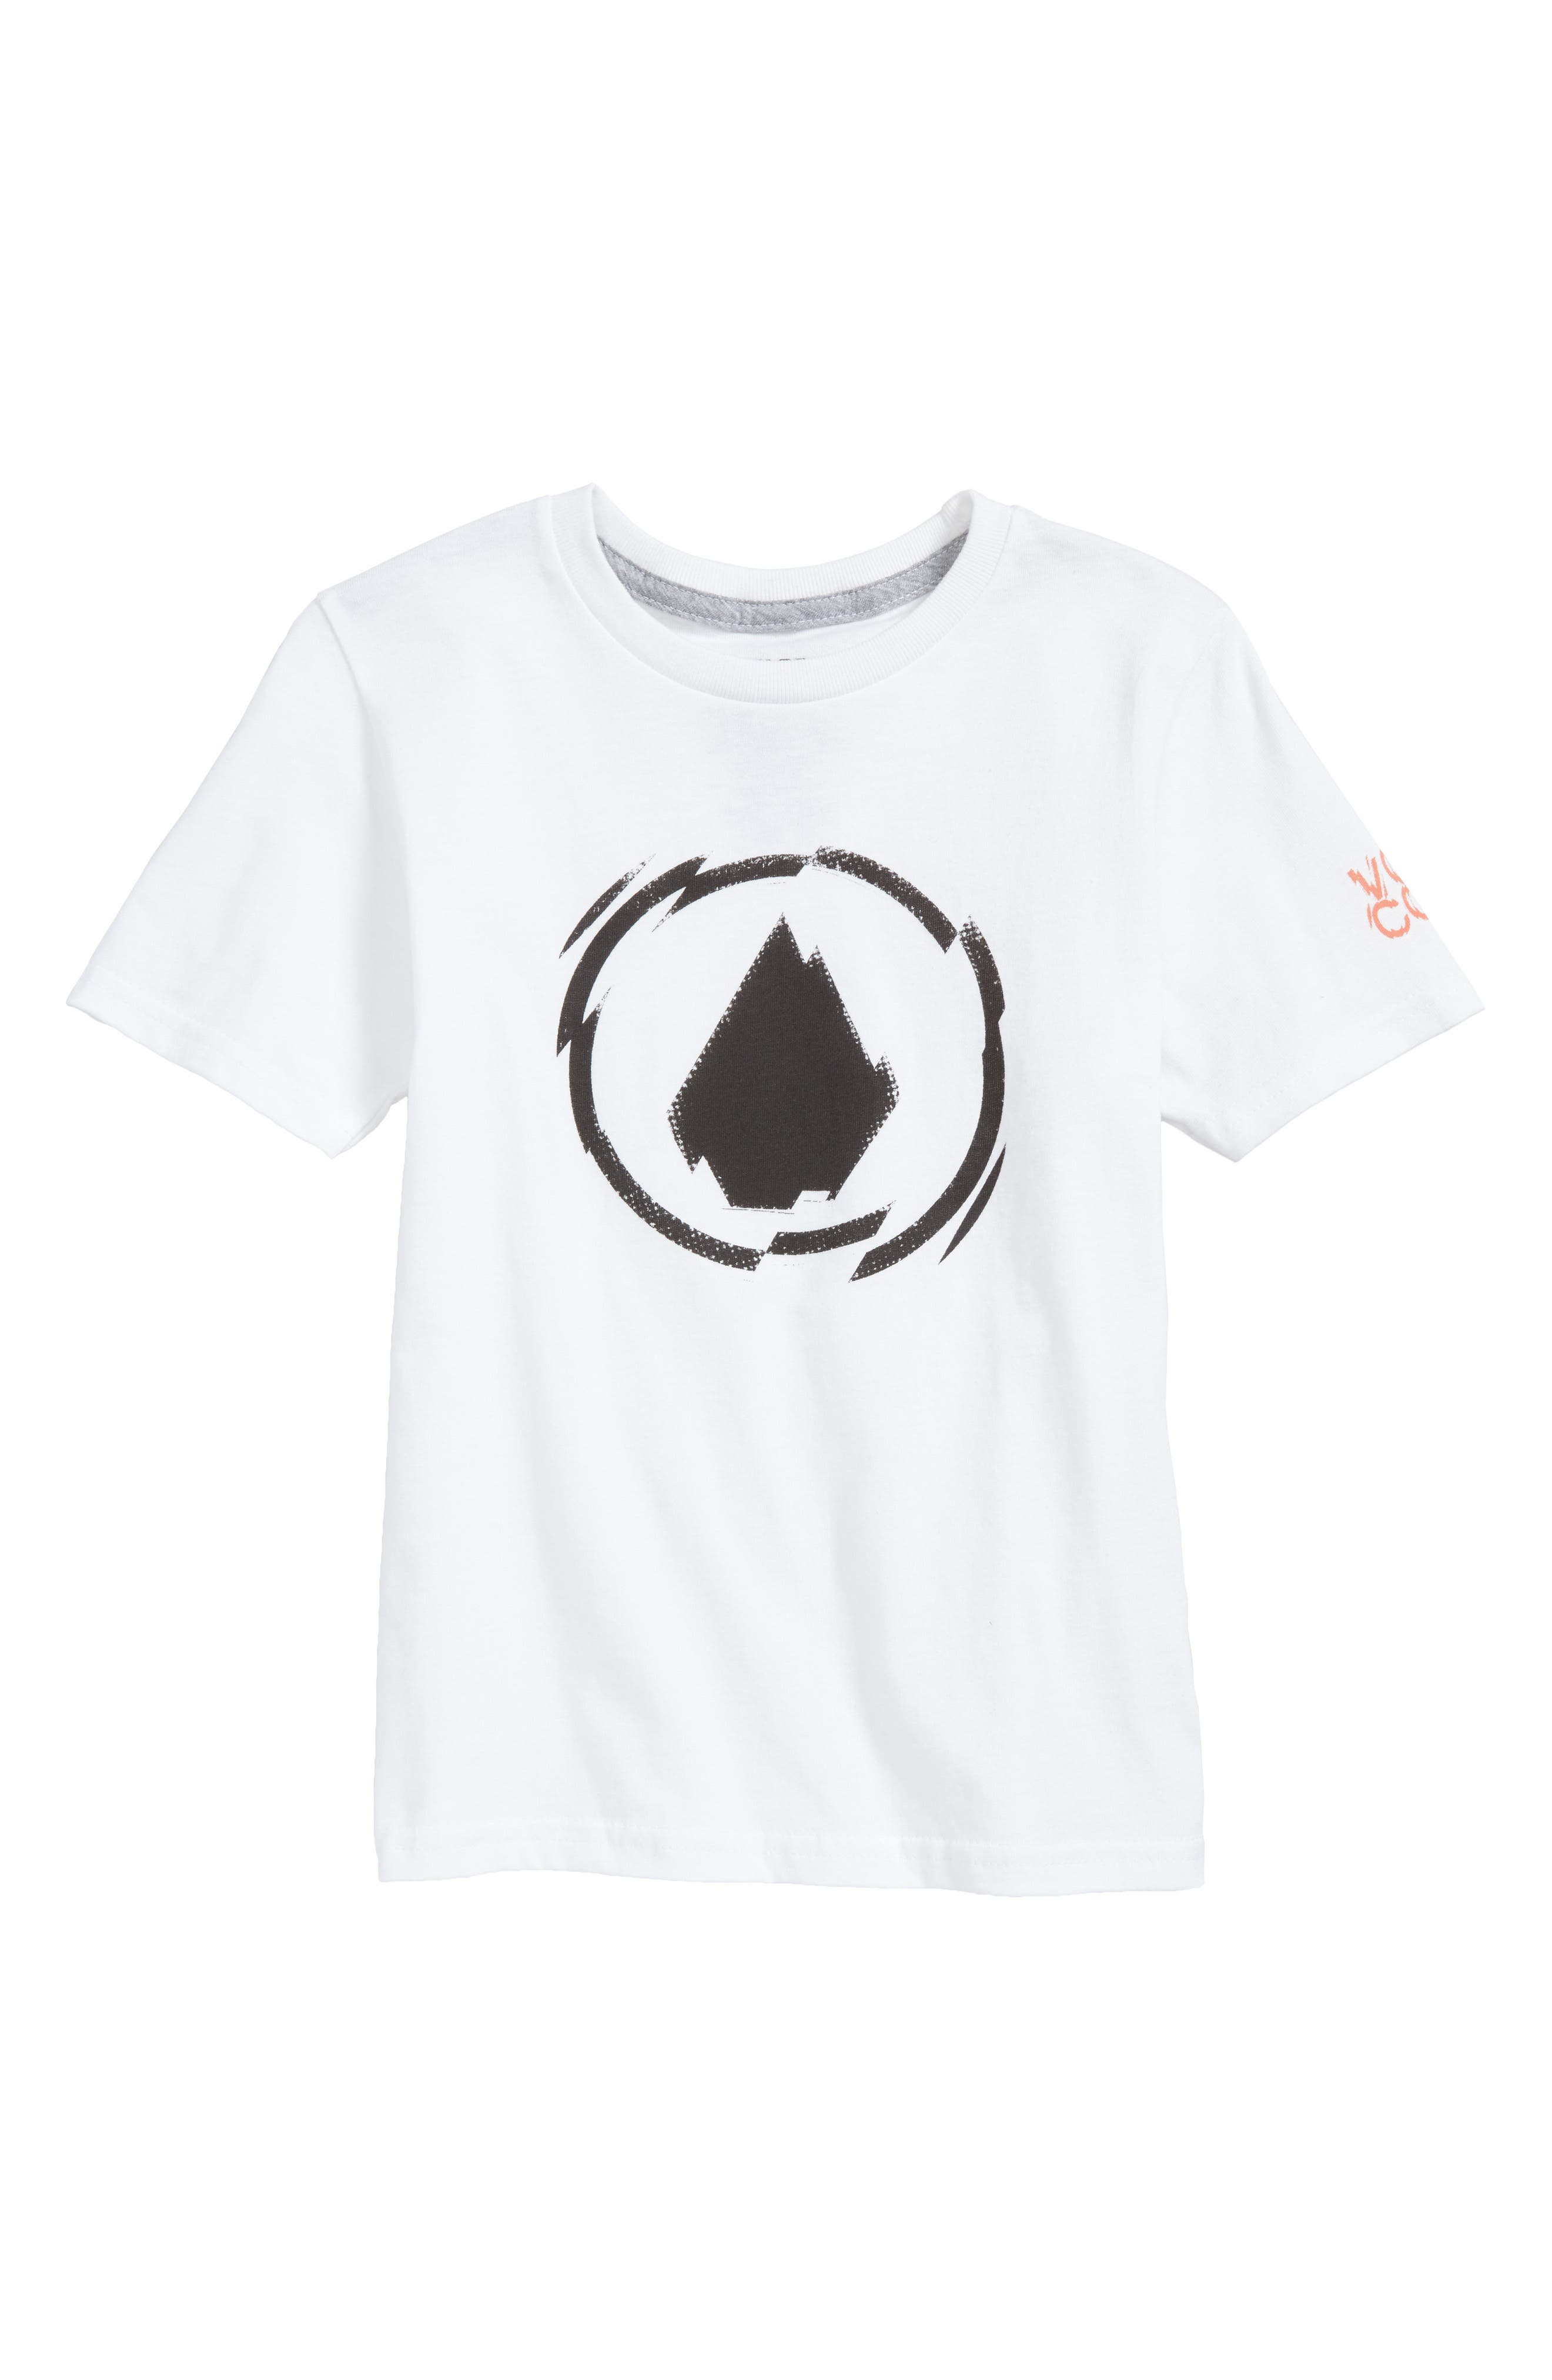 Shatter T-Shirt,                         Main,                         color, 100